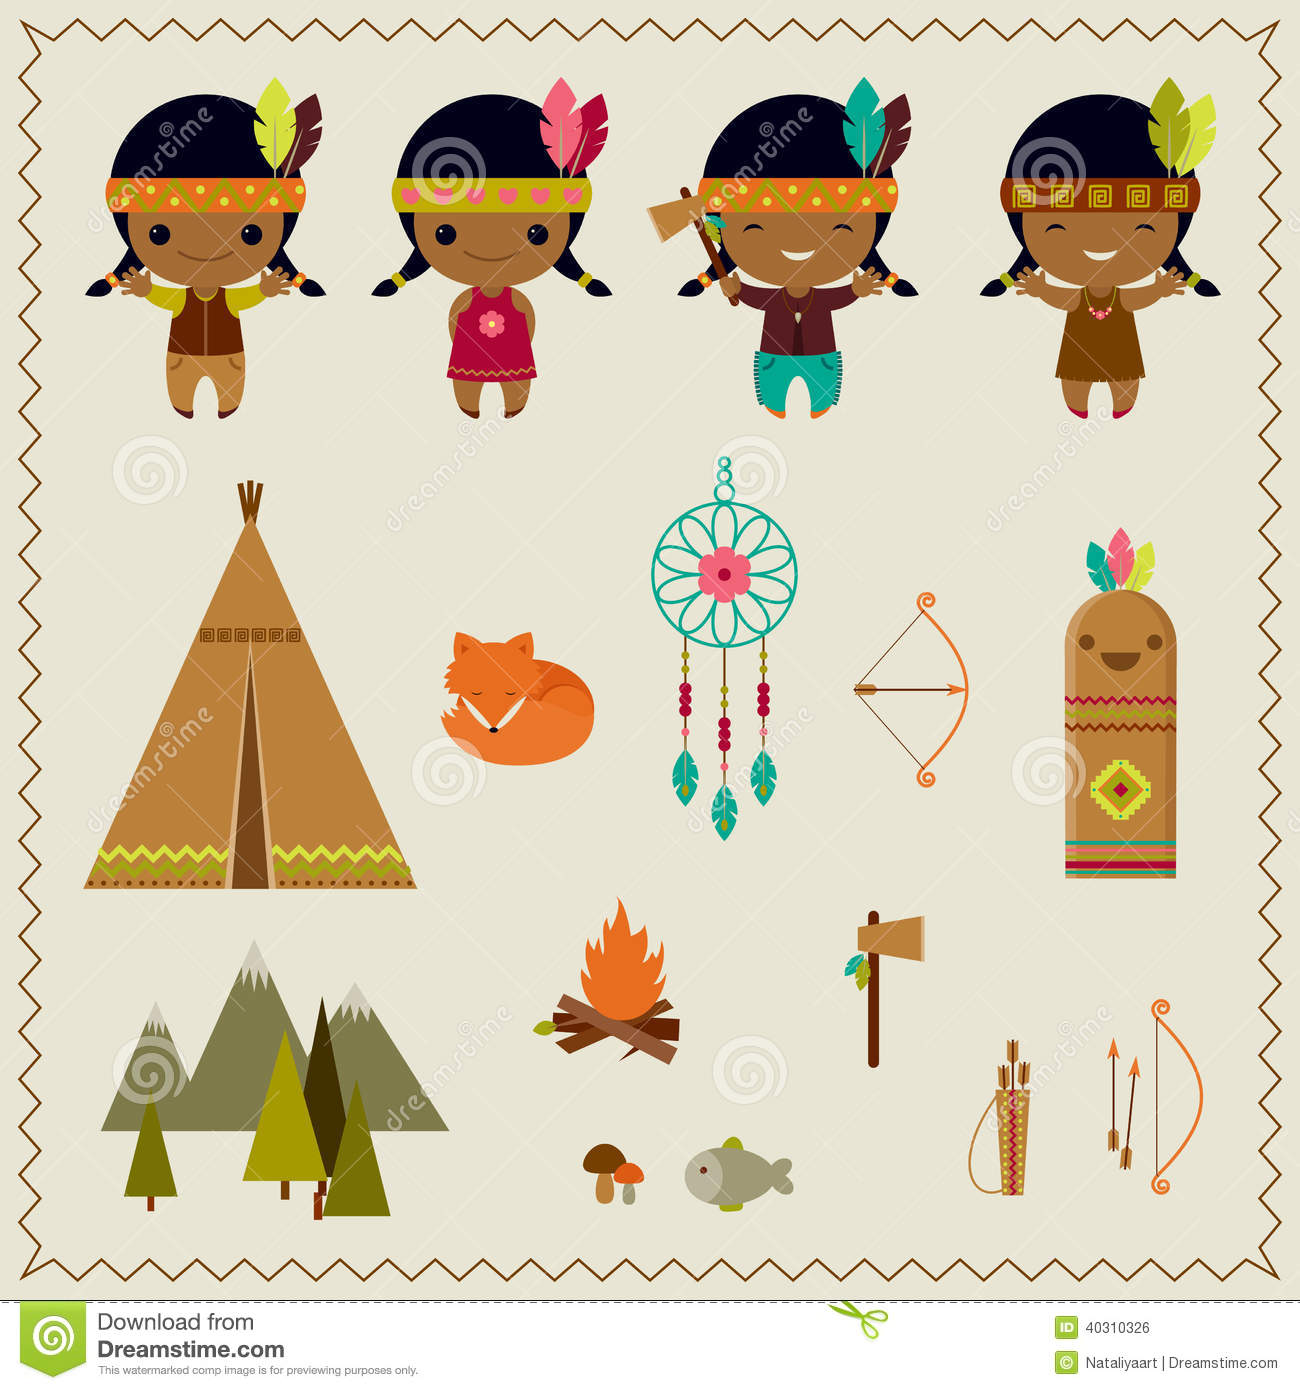 American Indian Clipart Icons Design Stock Vector Image 40310326